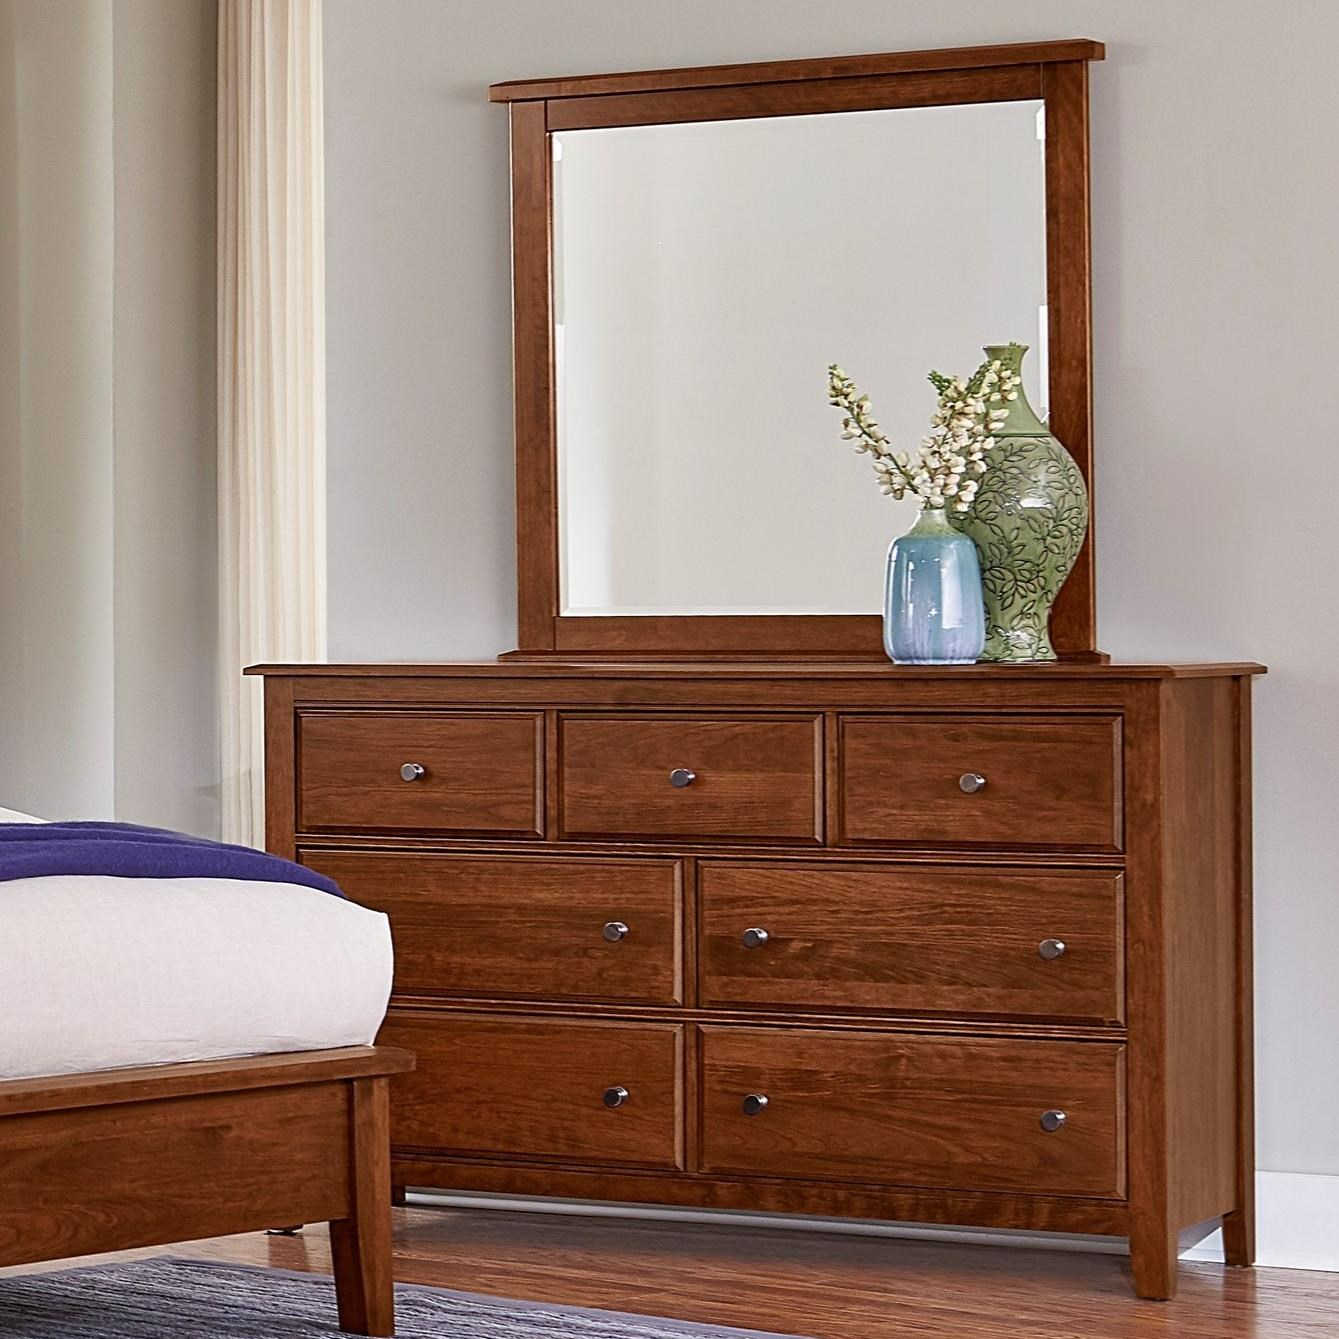 Artisan Choices Loft Triple Dresser & Tall Landscape Mirror by Artisan & Post at Northeast Factory Direct